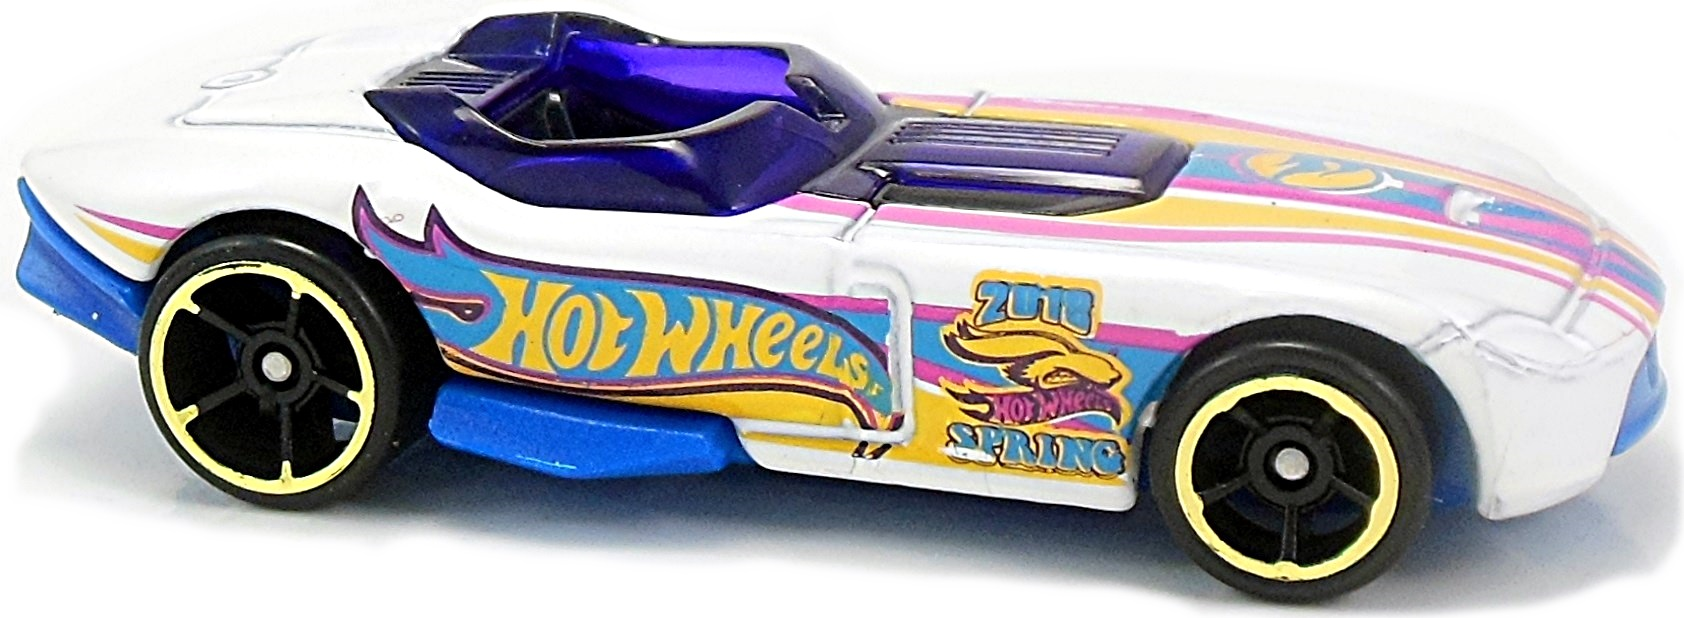 hot wheels langka treasure hunt Rrroadster  Hot Wheels Newsletter